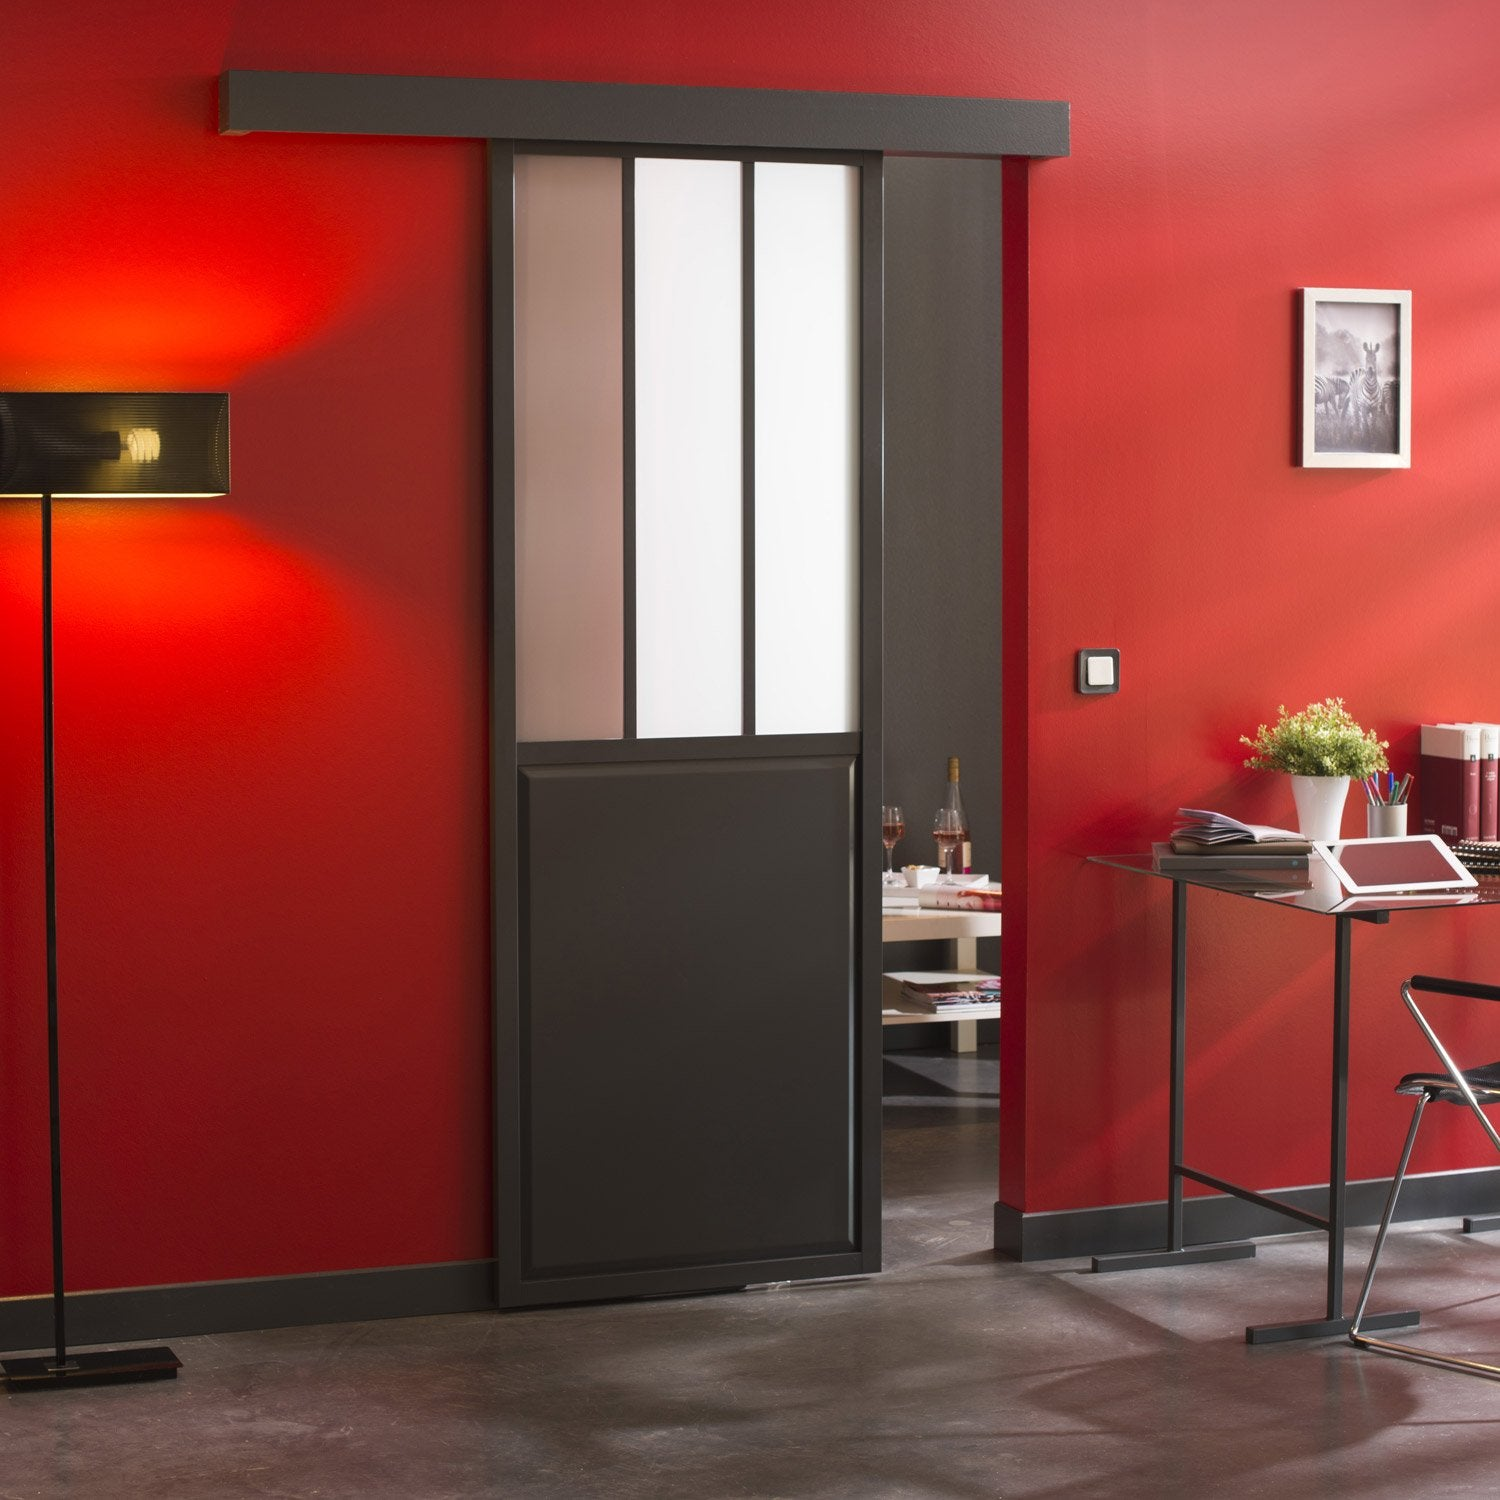 ensemble porte coulissante atelier verre clair mdf rev tu avec le rail tango leroy merlin. Black Bedroom Furniture Sets. Home Design Ideas